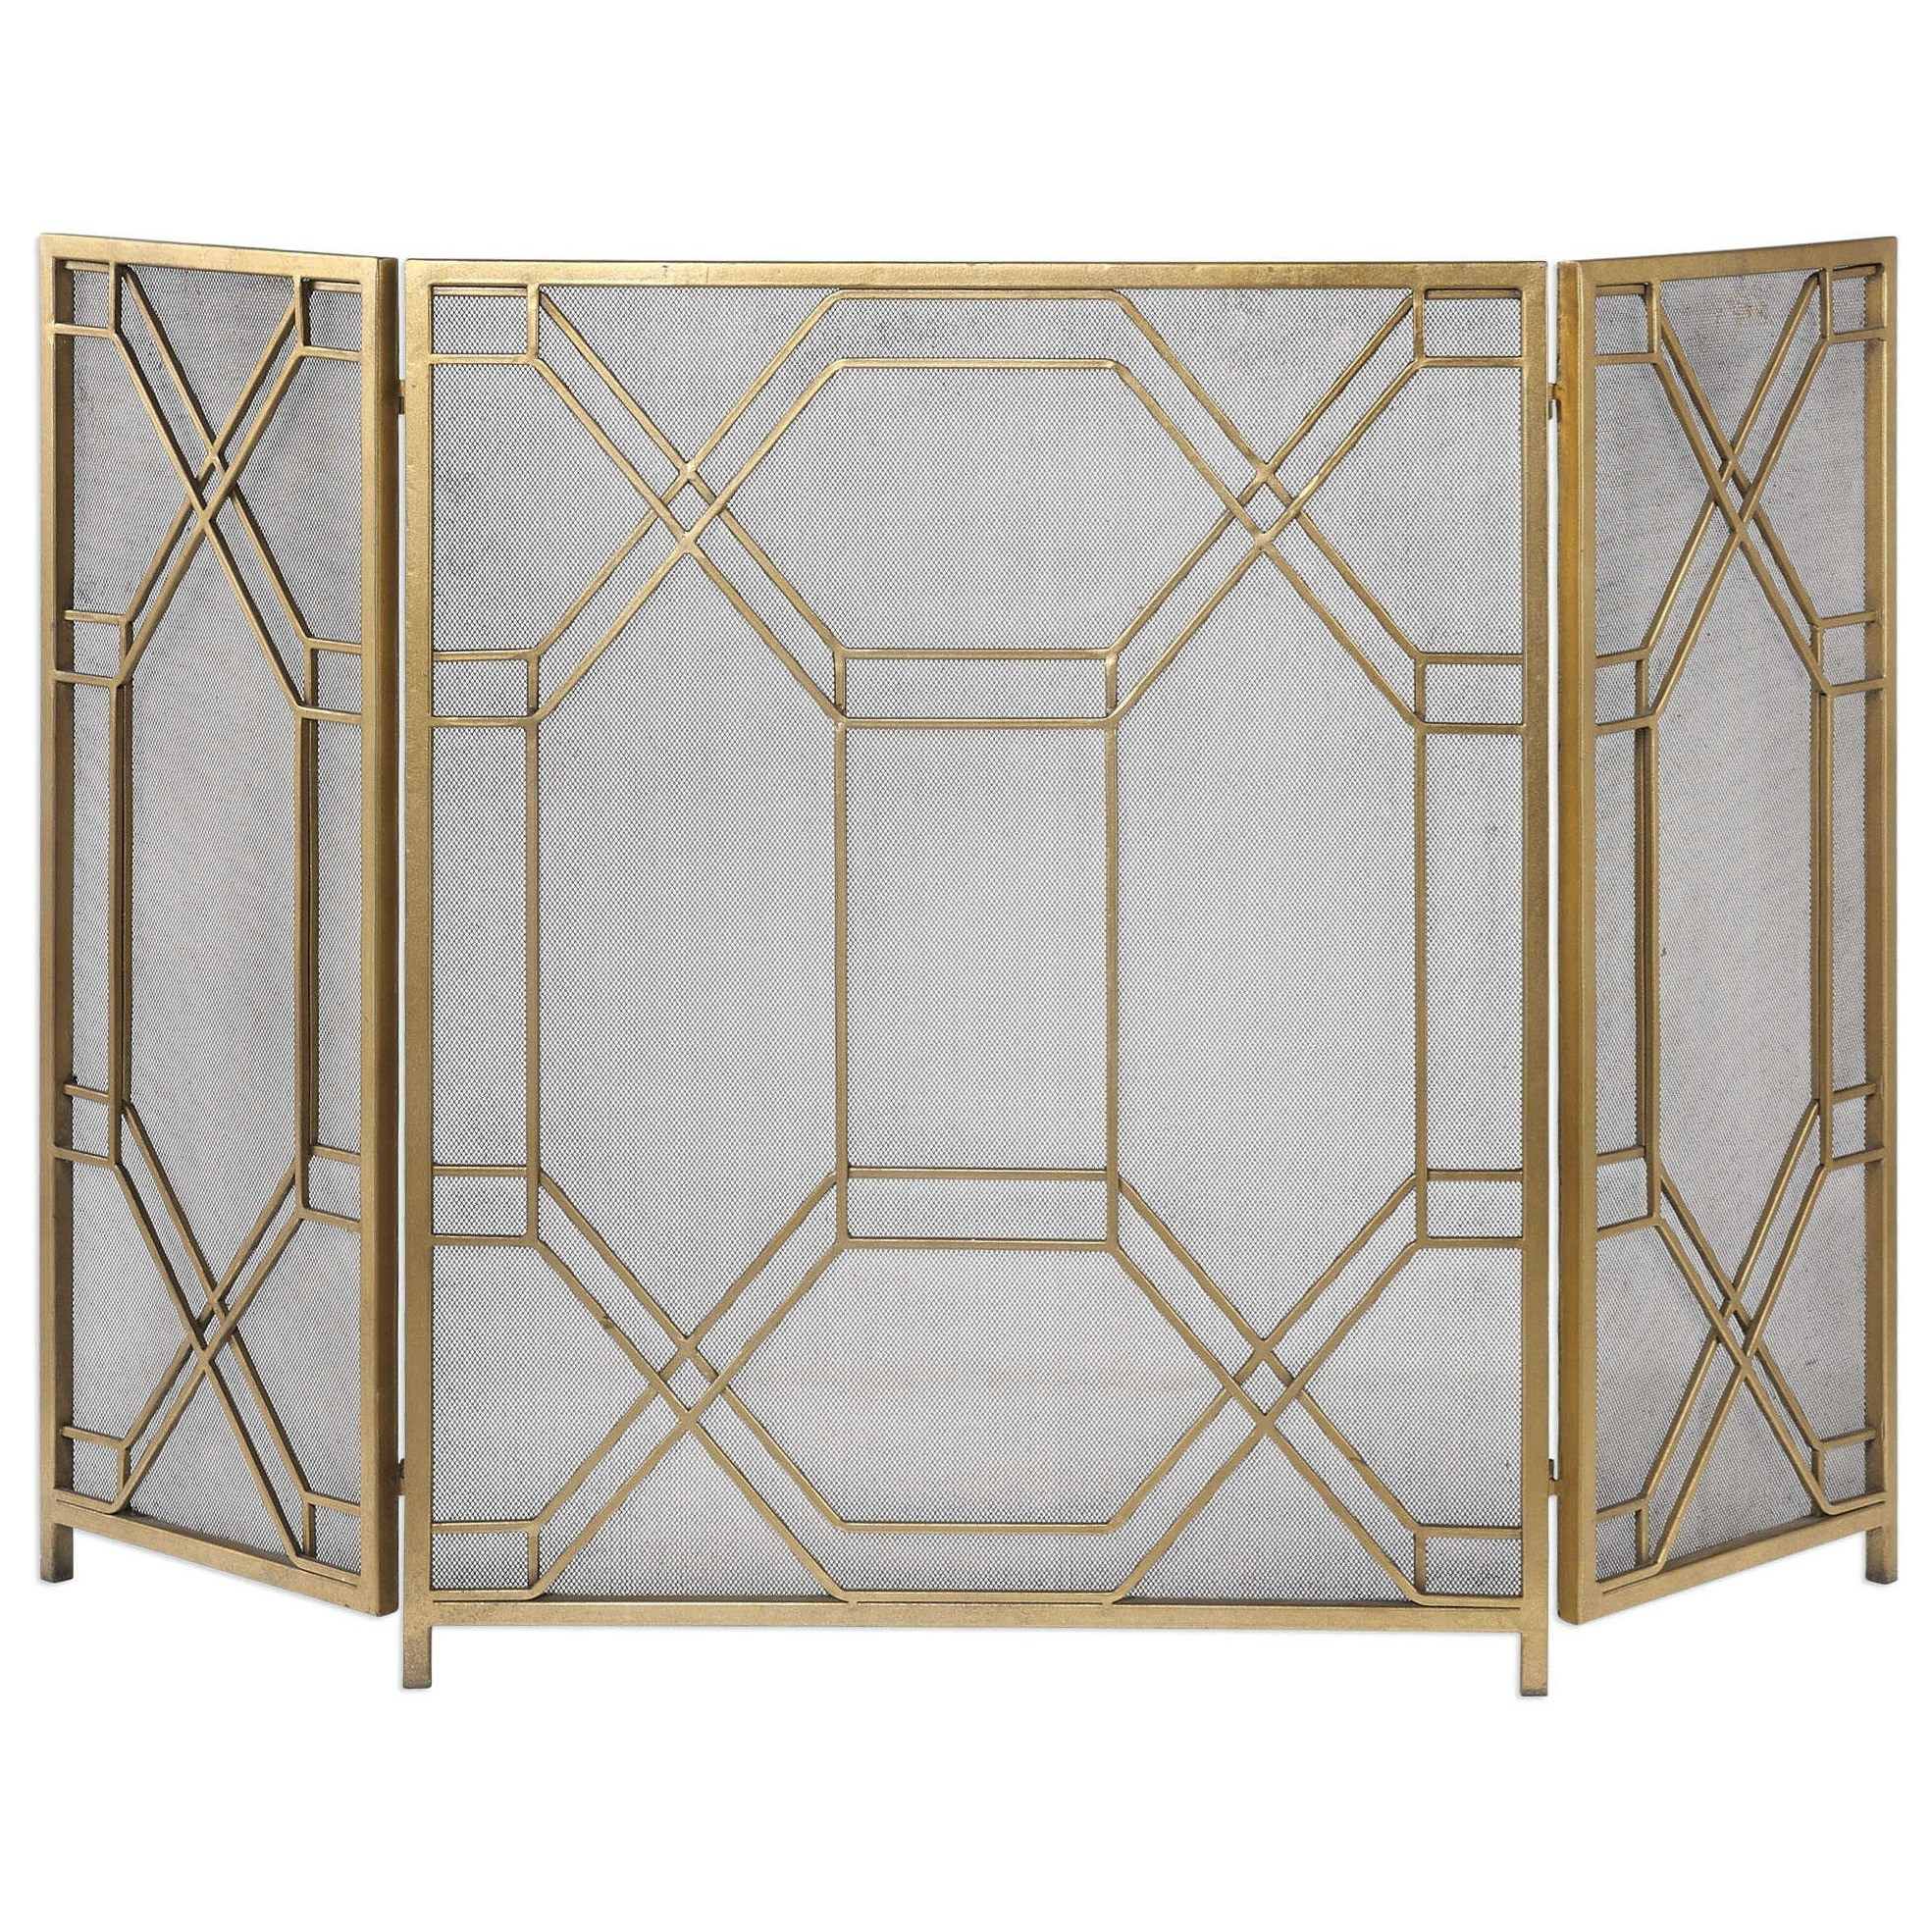 Accessories Rosen Gold Fireplace Screen by Uttermost at Del Sol Furniture